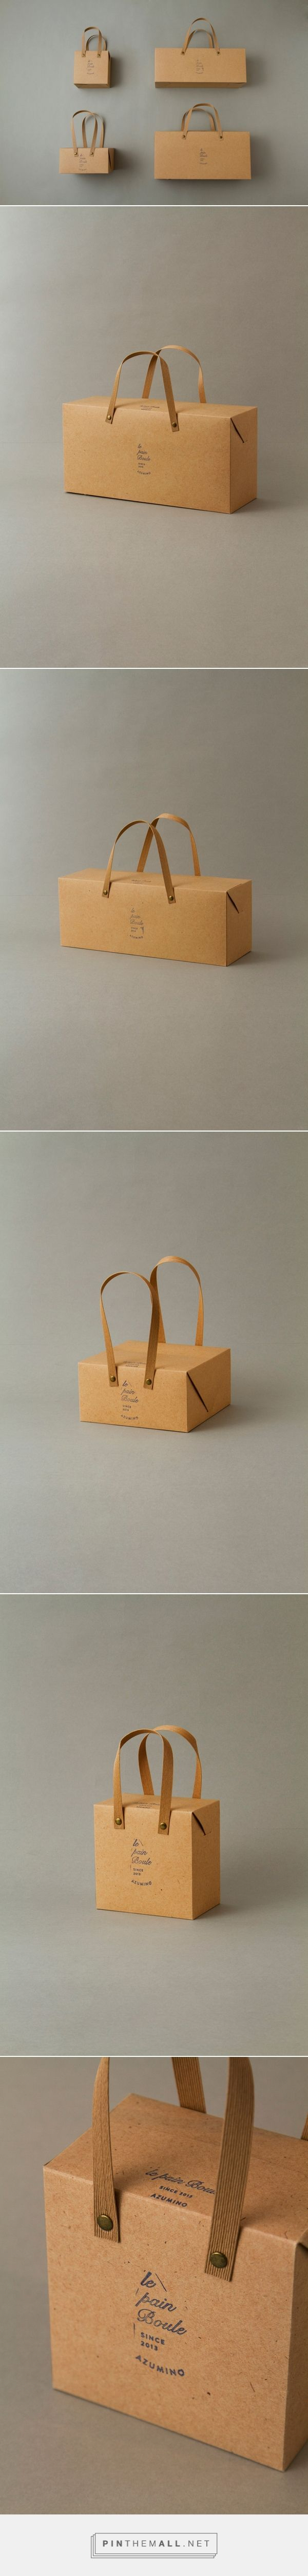 Artless Inc. le pain boule new gift box #packaging curated by Packaging Diva PD created via http://www.artless.co.jp/alog/?s=le+pain+boule&x=0&y=0: